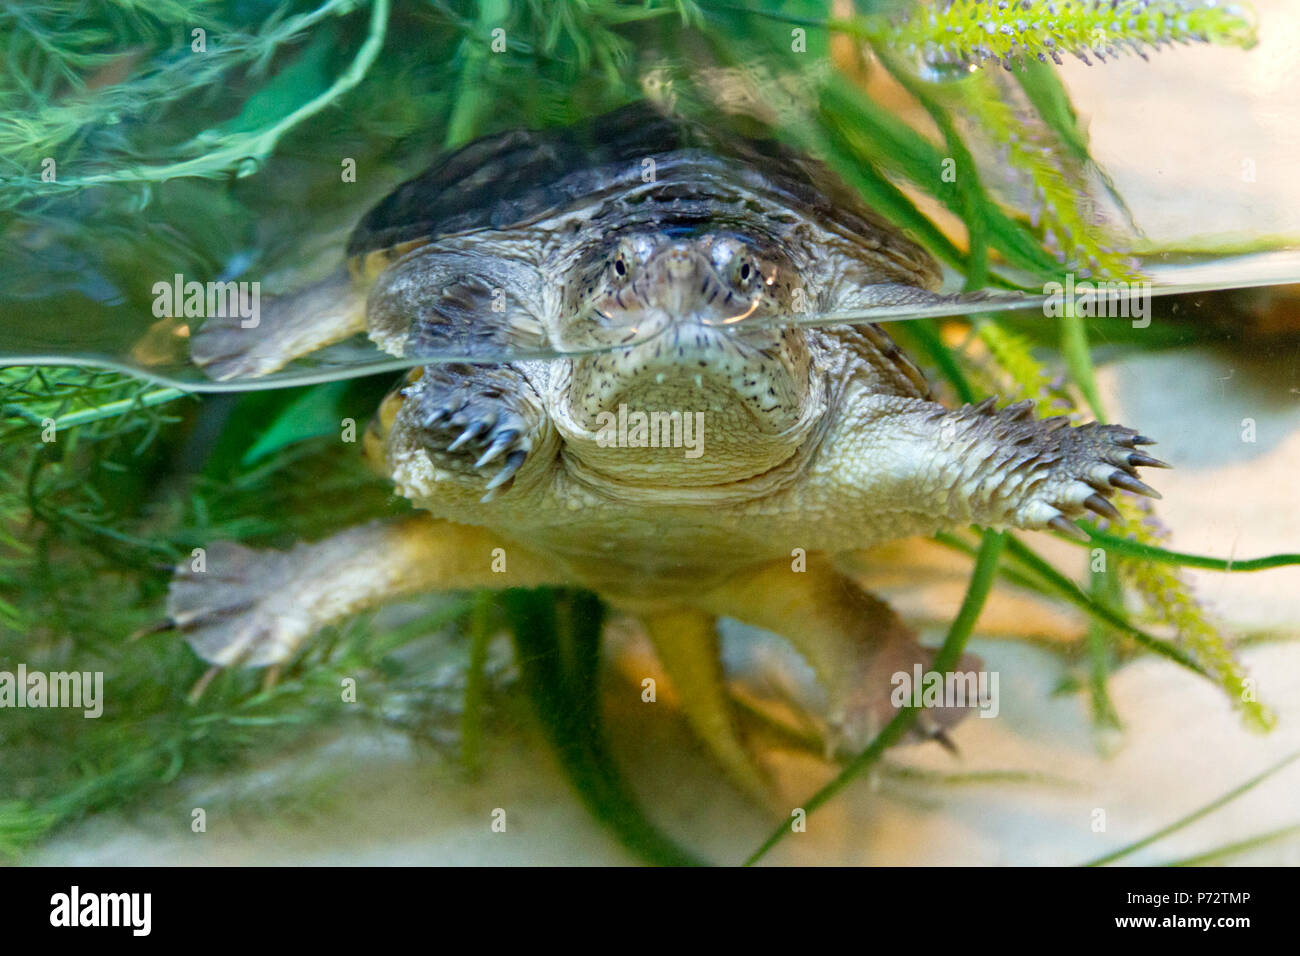 Close Up Of A Common Snapping Turtle A Large Reptile That Is Highly